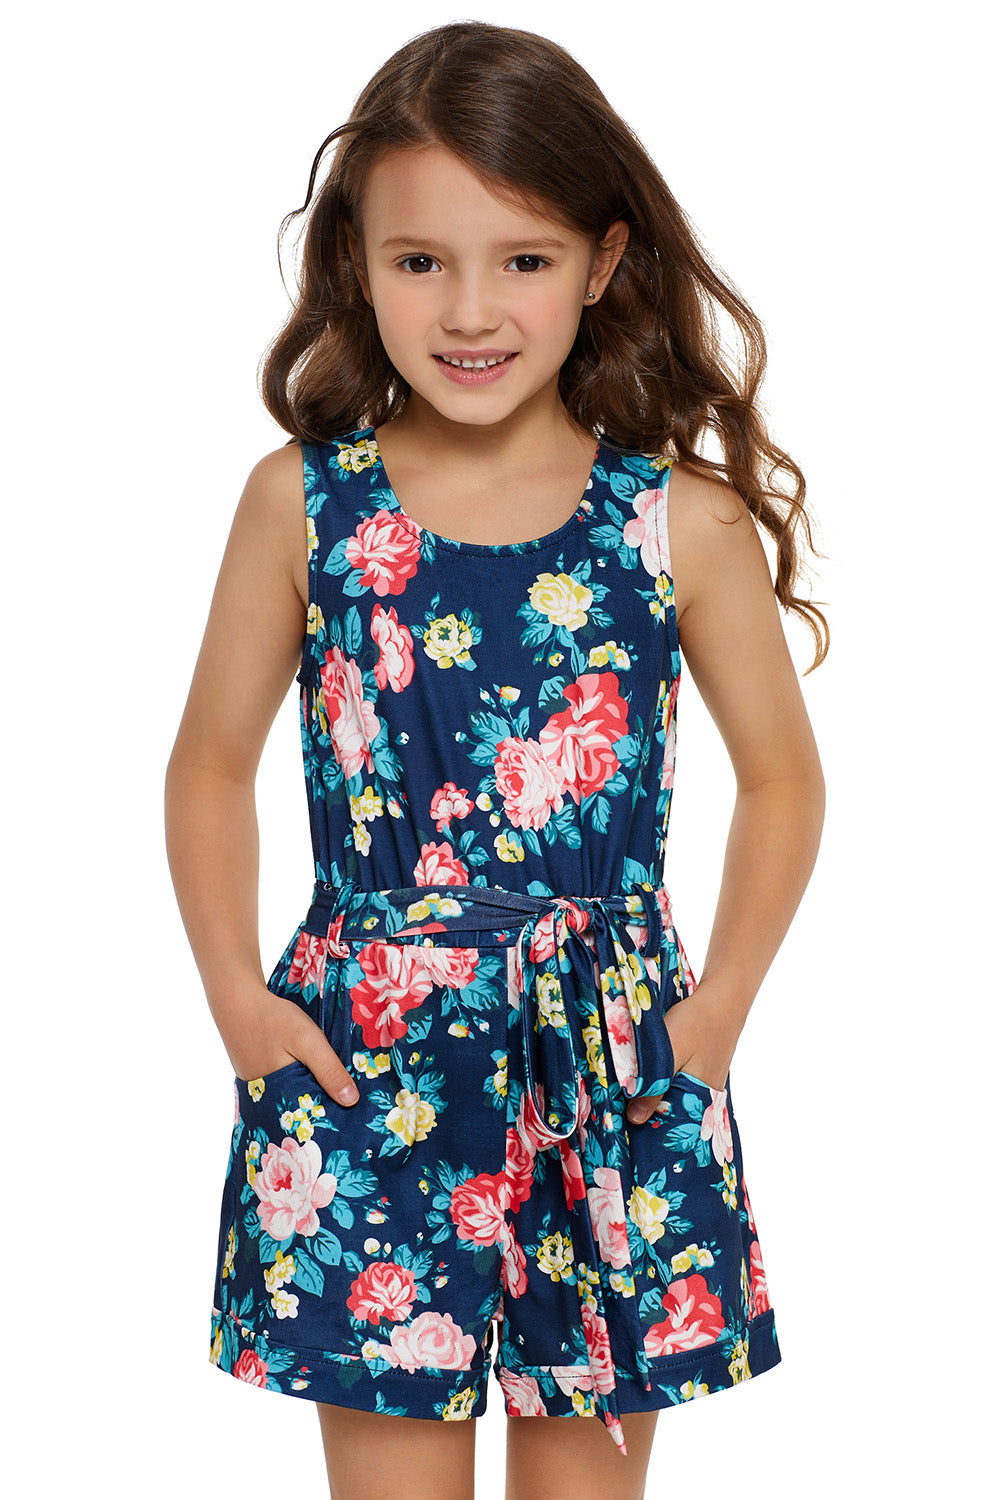 Blue Floral Romper for Little Girls